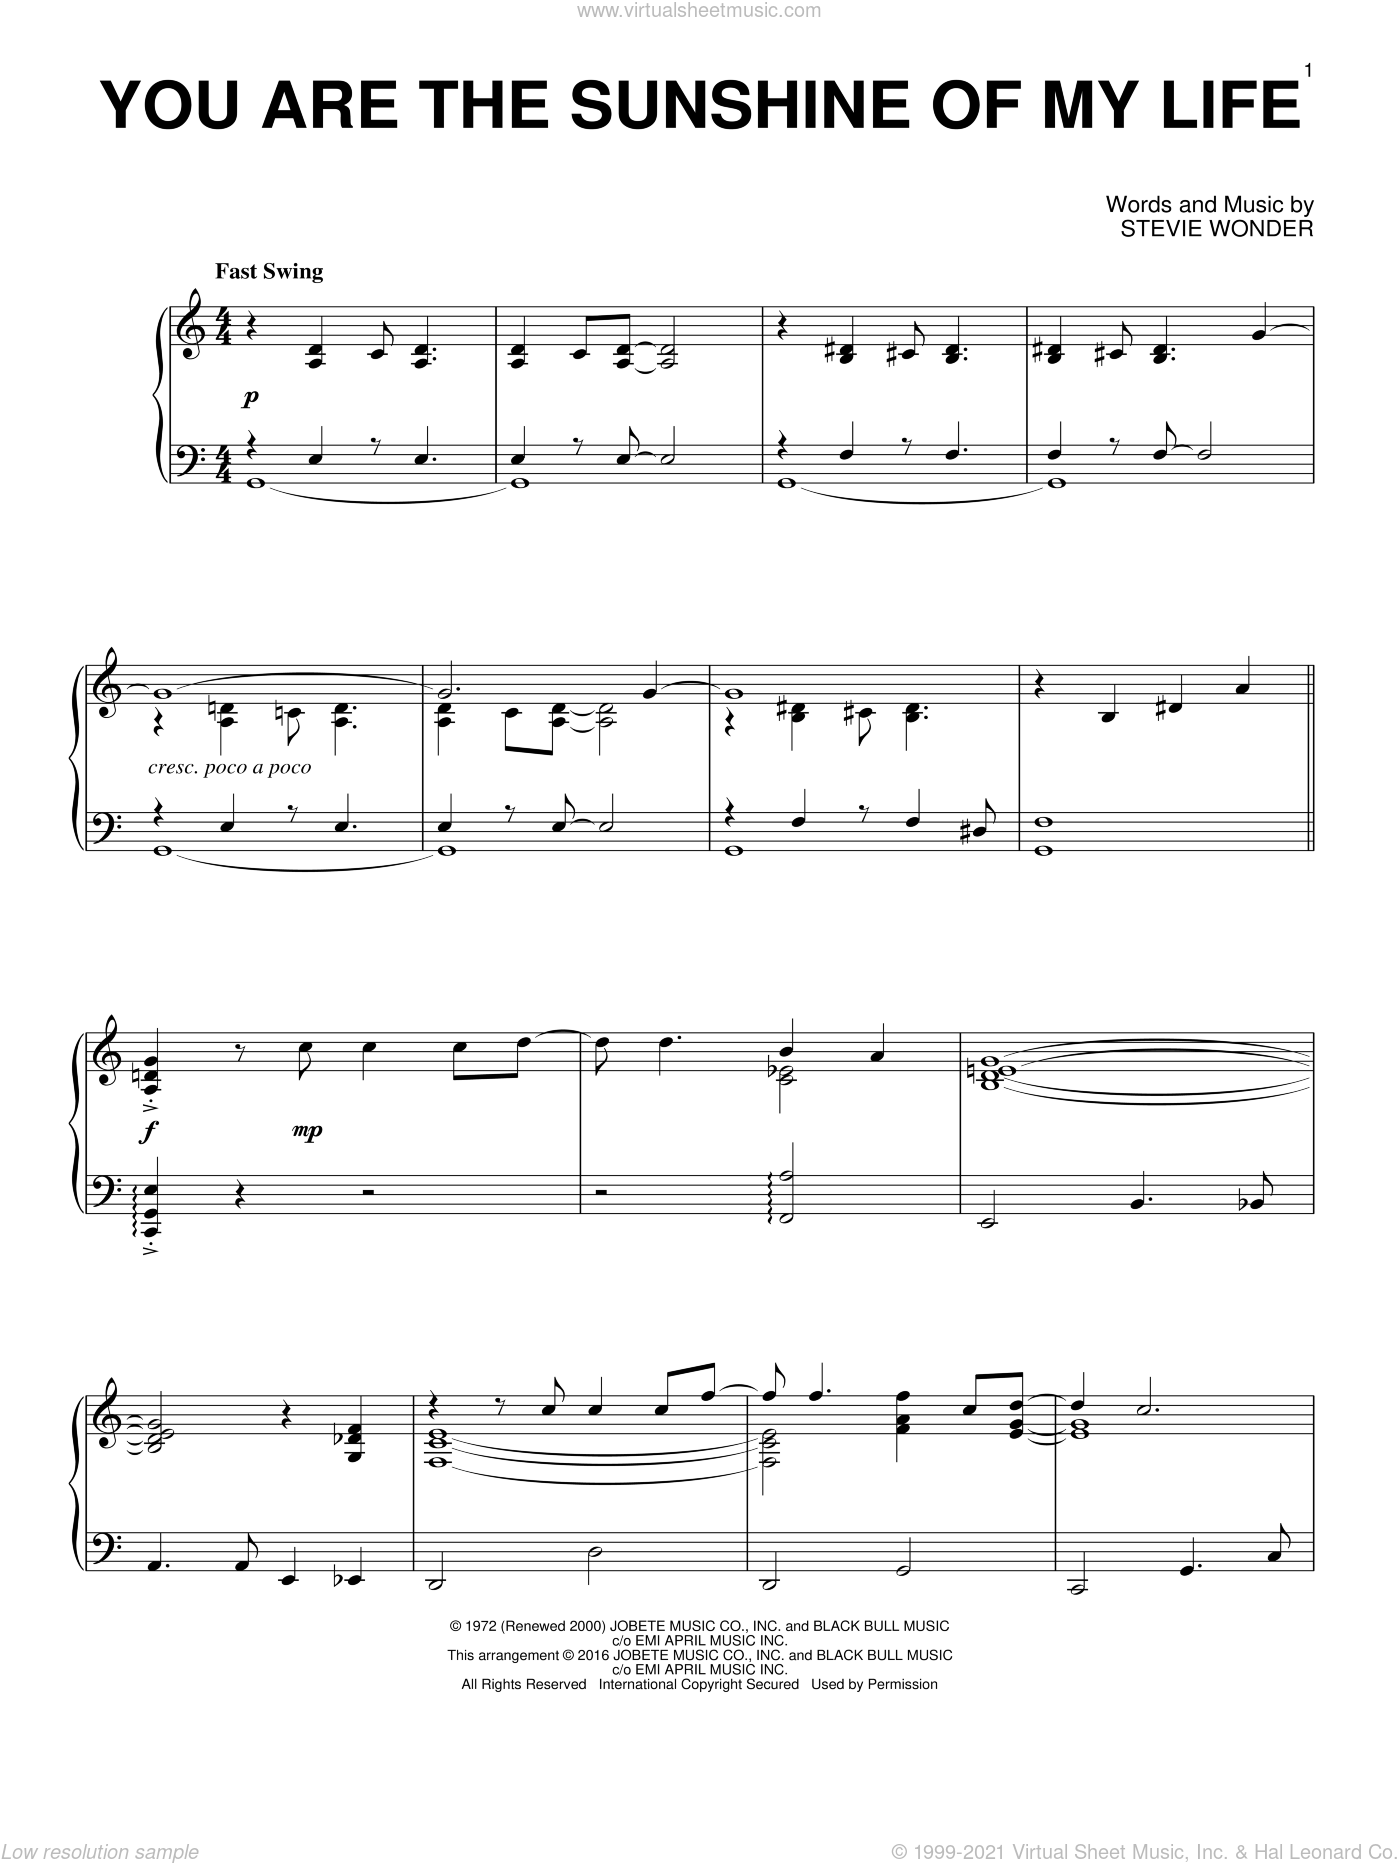 You Are The Sunshine Of My Life sheet music for piano solo by Stevie Wonder, intermediate skill level